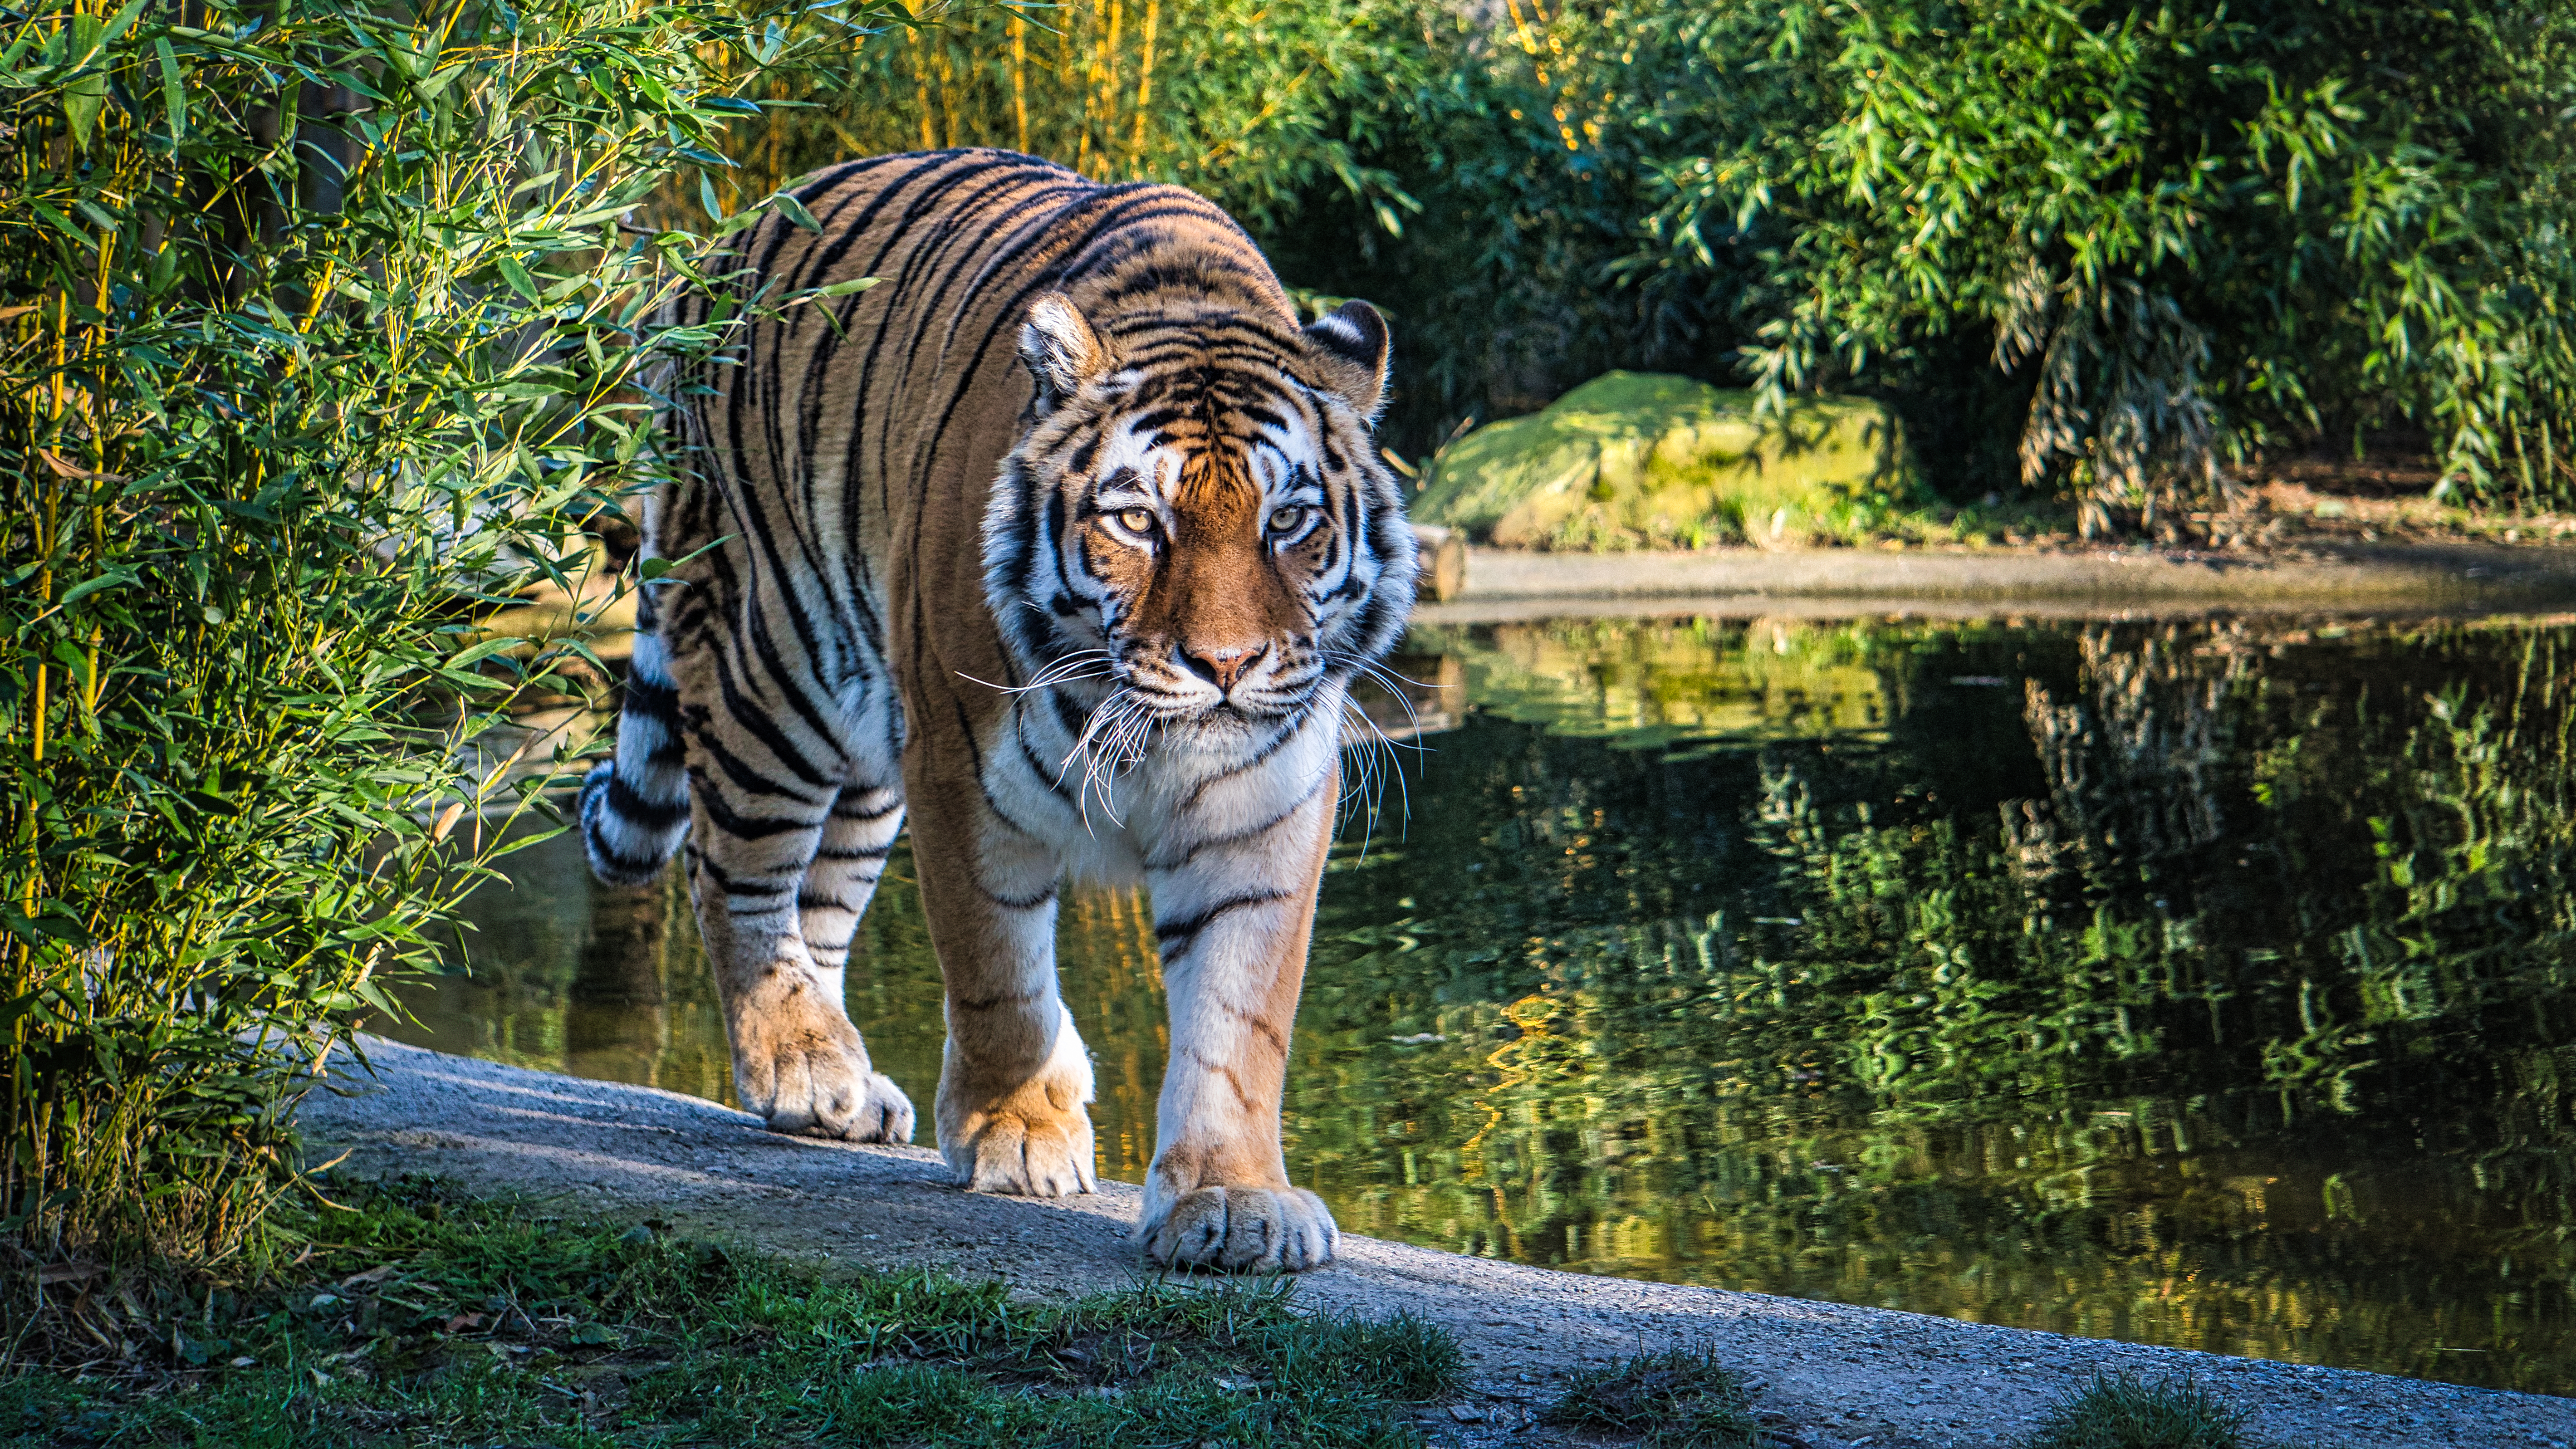 77361 download wallpaper Animals, Tiger, Big Cat, Sight, Opinion, Predator, Lake screensavers and pictures for free